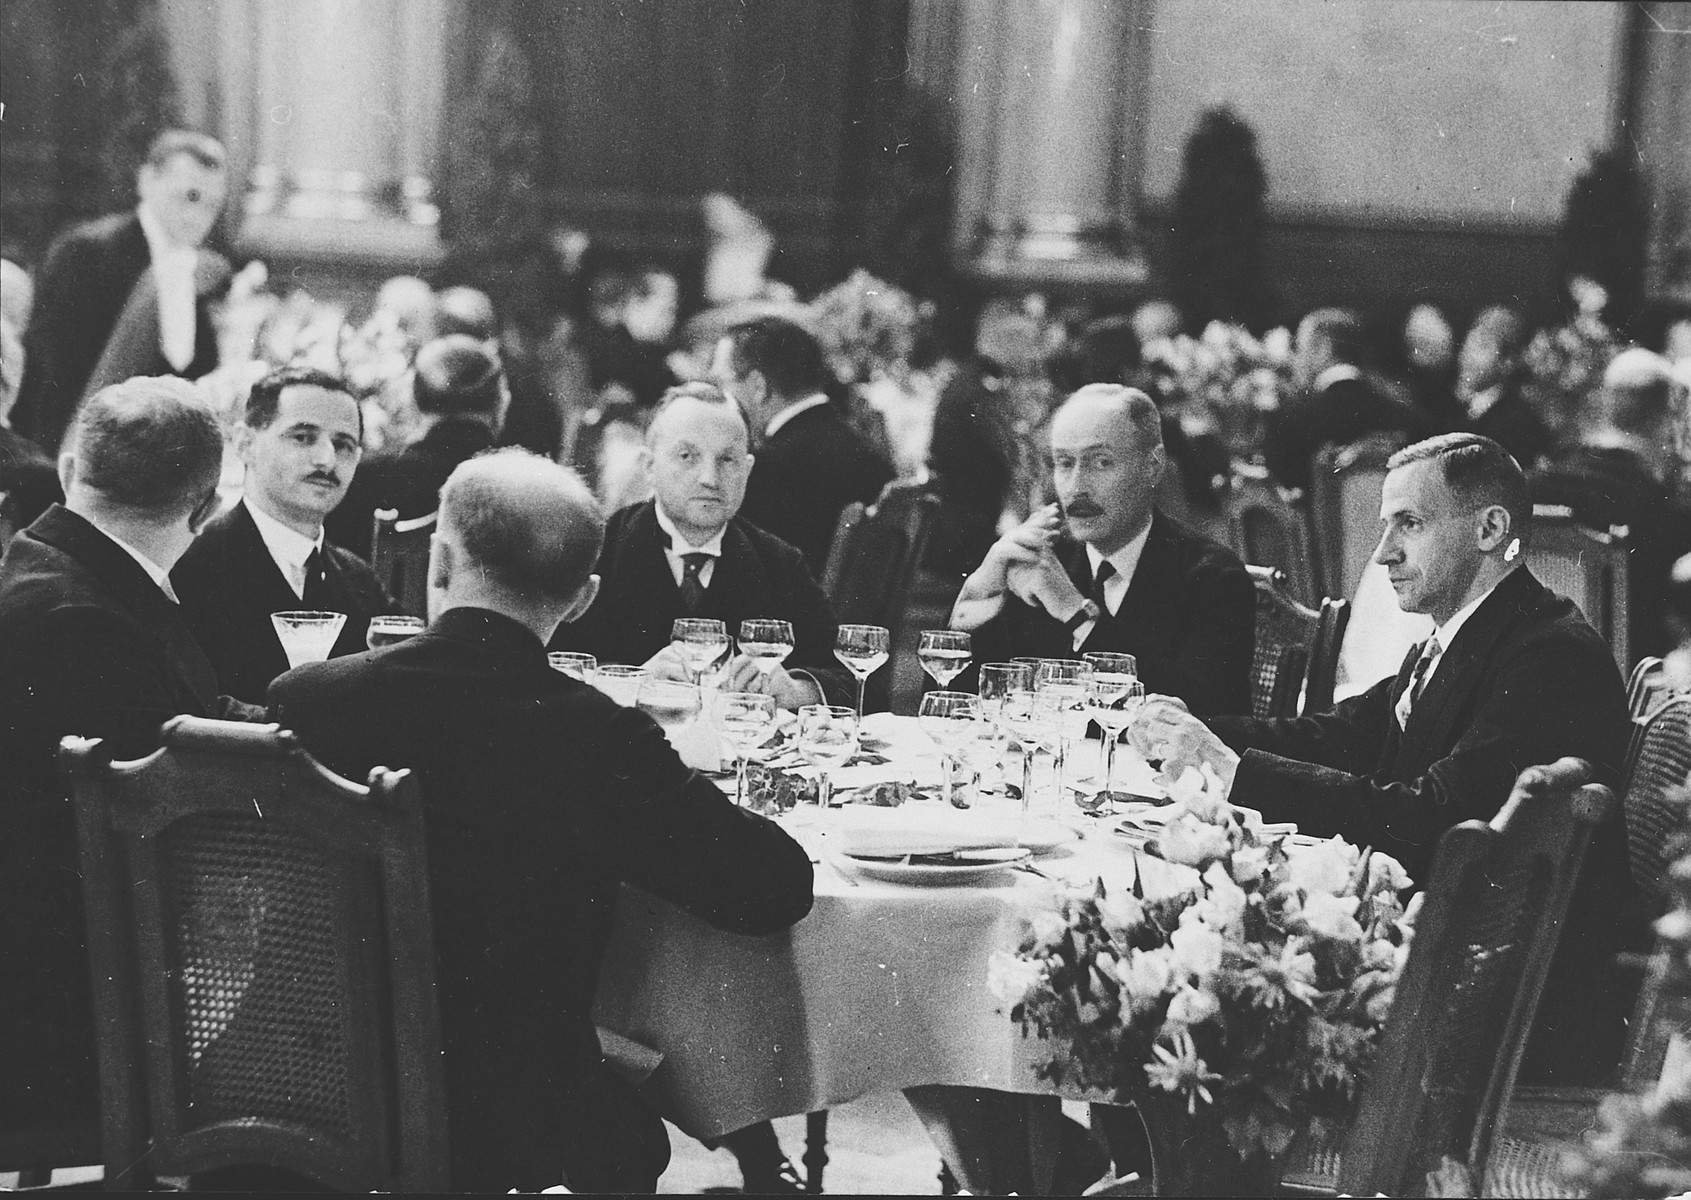 Guests sit at tables in the townhall banquet hall for a formal breakfast in honor of King Fouad of Egypt.  Among those pictured is Kurt Zielenziger (seated second from the left), press secretary to the mayor of Berlin.